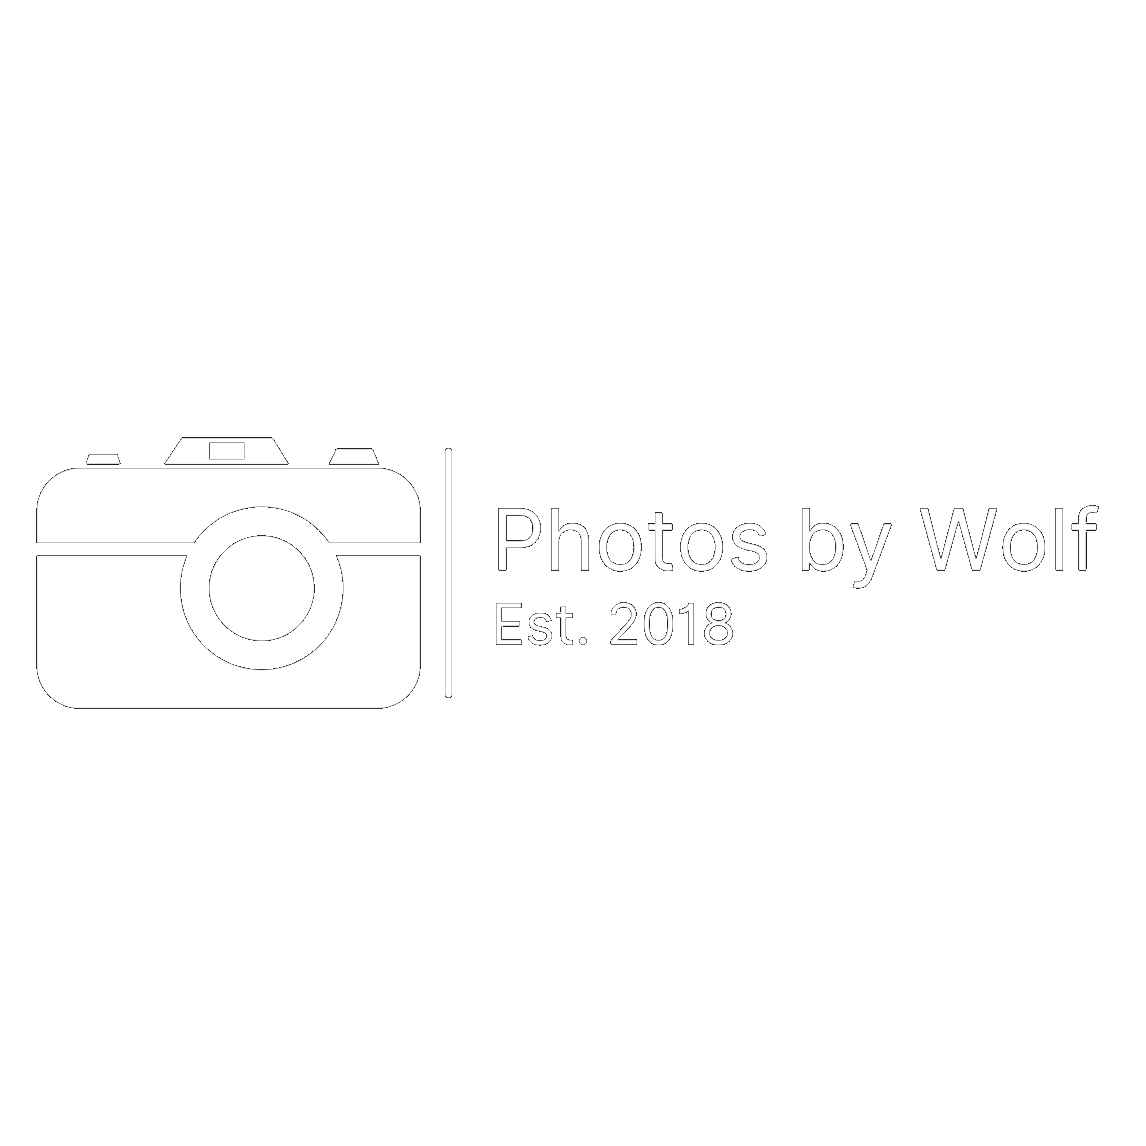 Wolves Photography